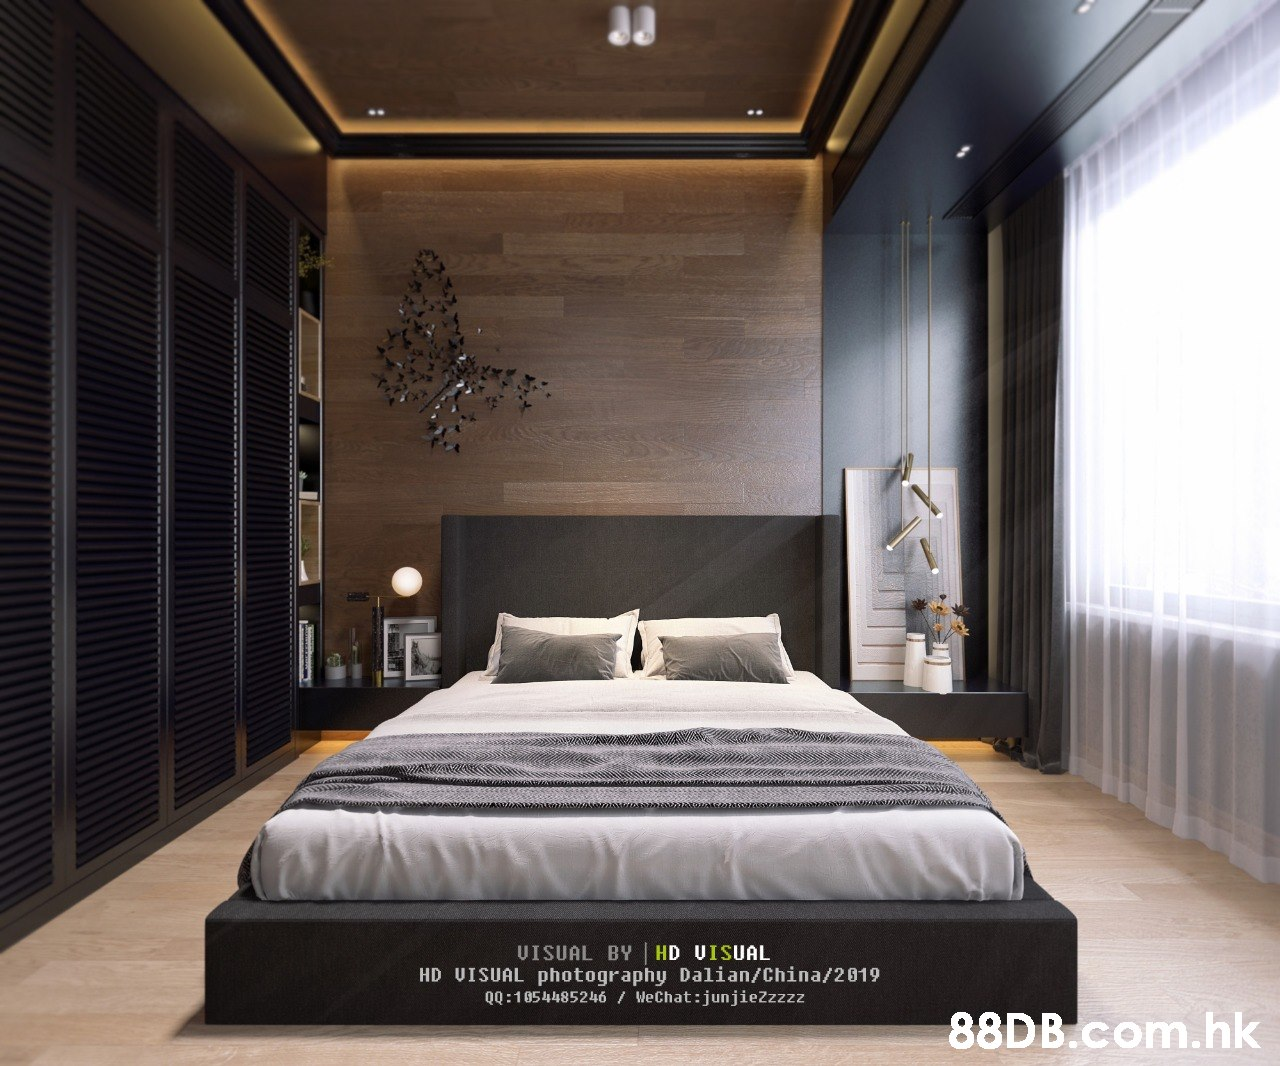 33 VISUAL BY HD UISUAL HD VISUAL photography Dalian/China/2019 QQ:1054485246 / WeChat:junjiezzzzz .hk  Bedroom,Bed,Interior design,Room,Furniture